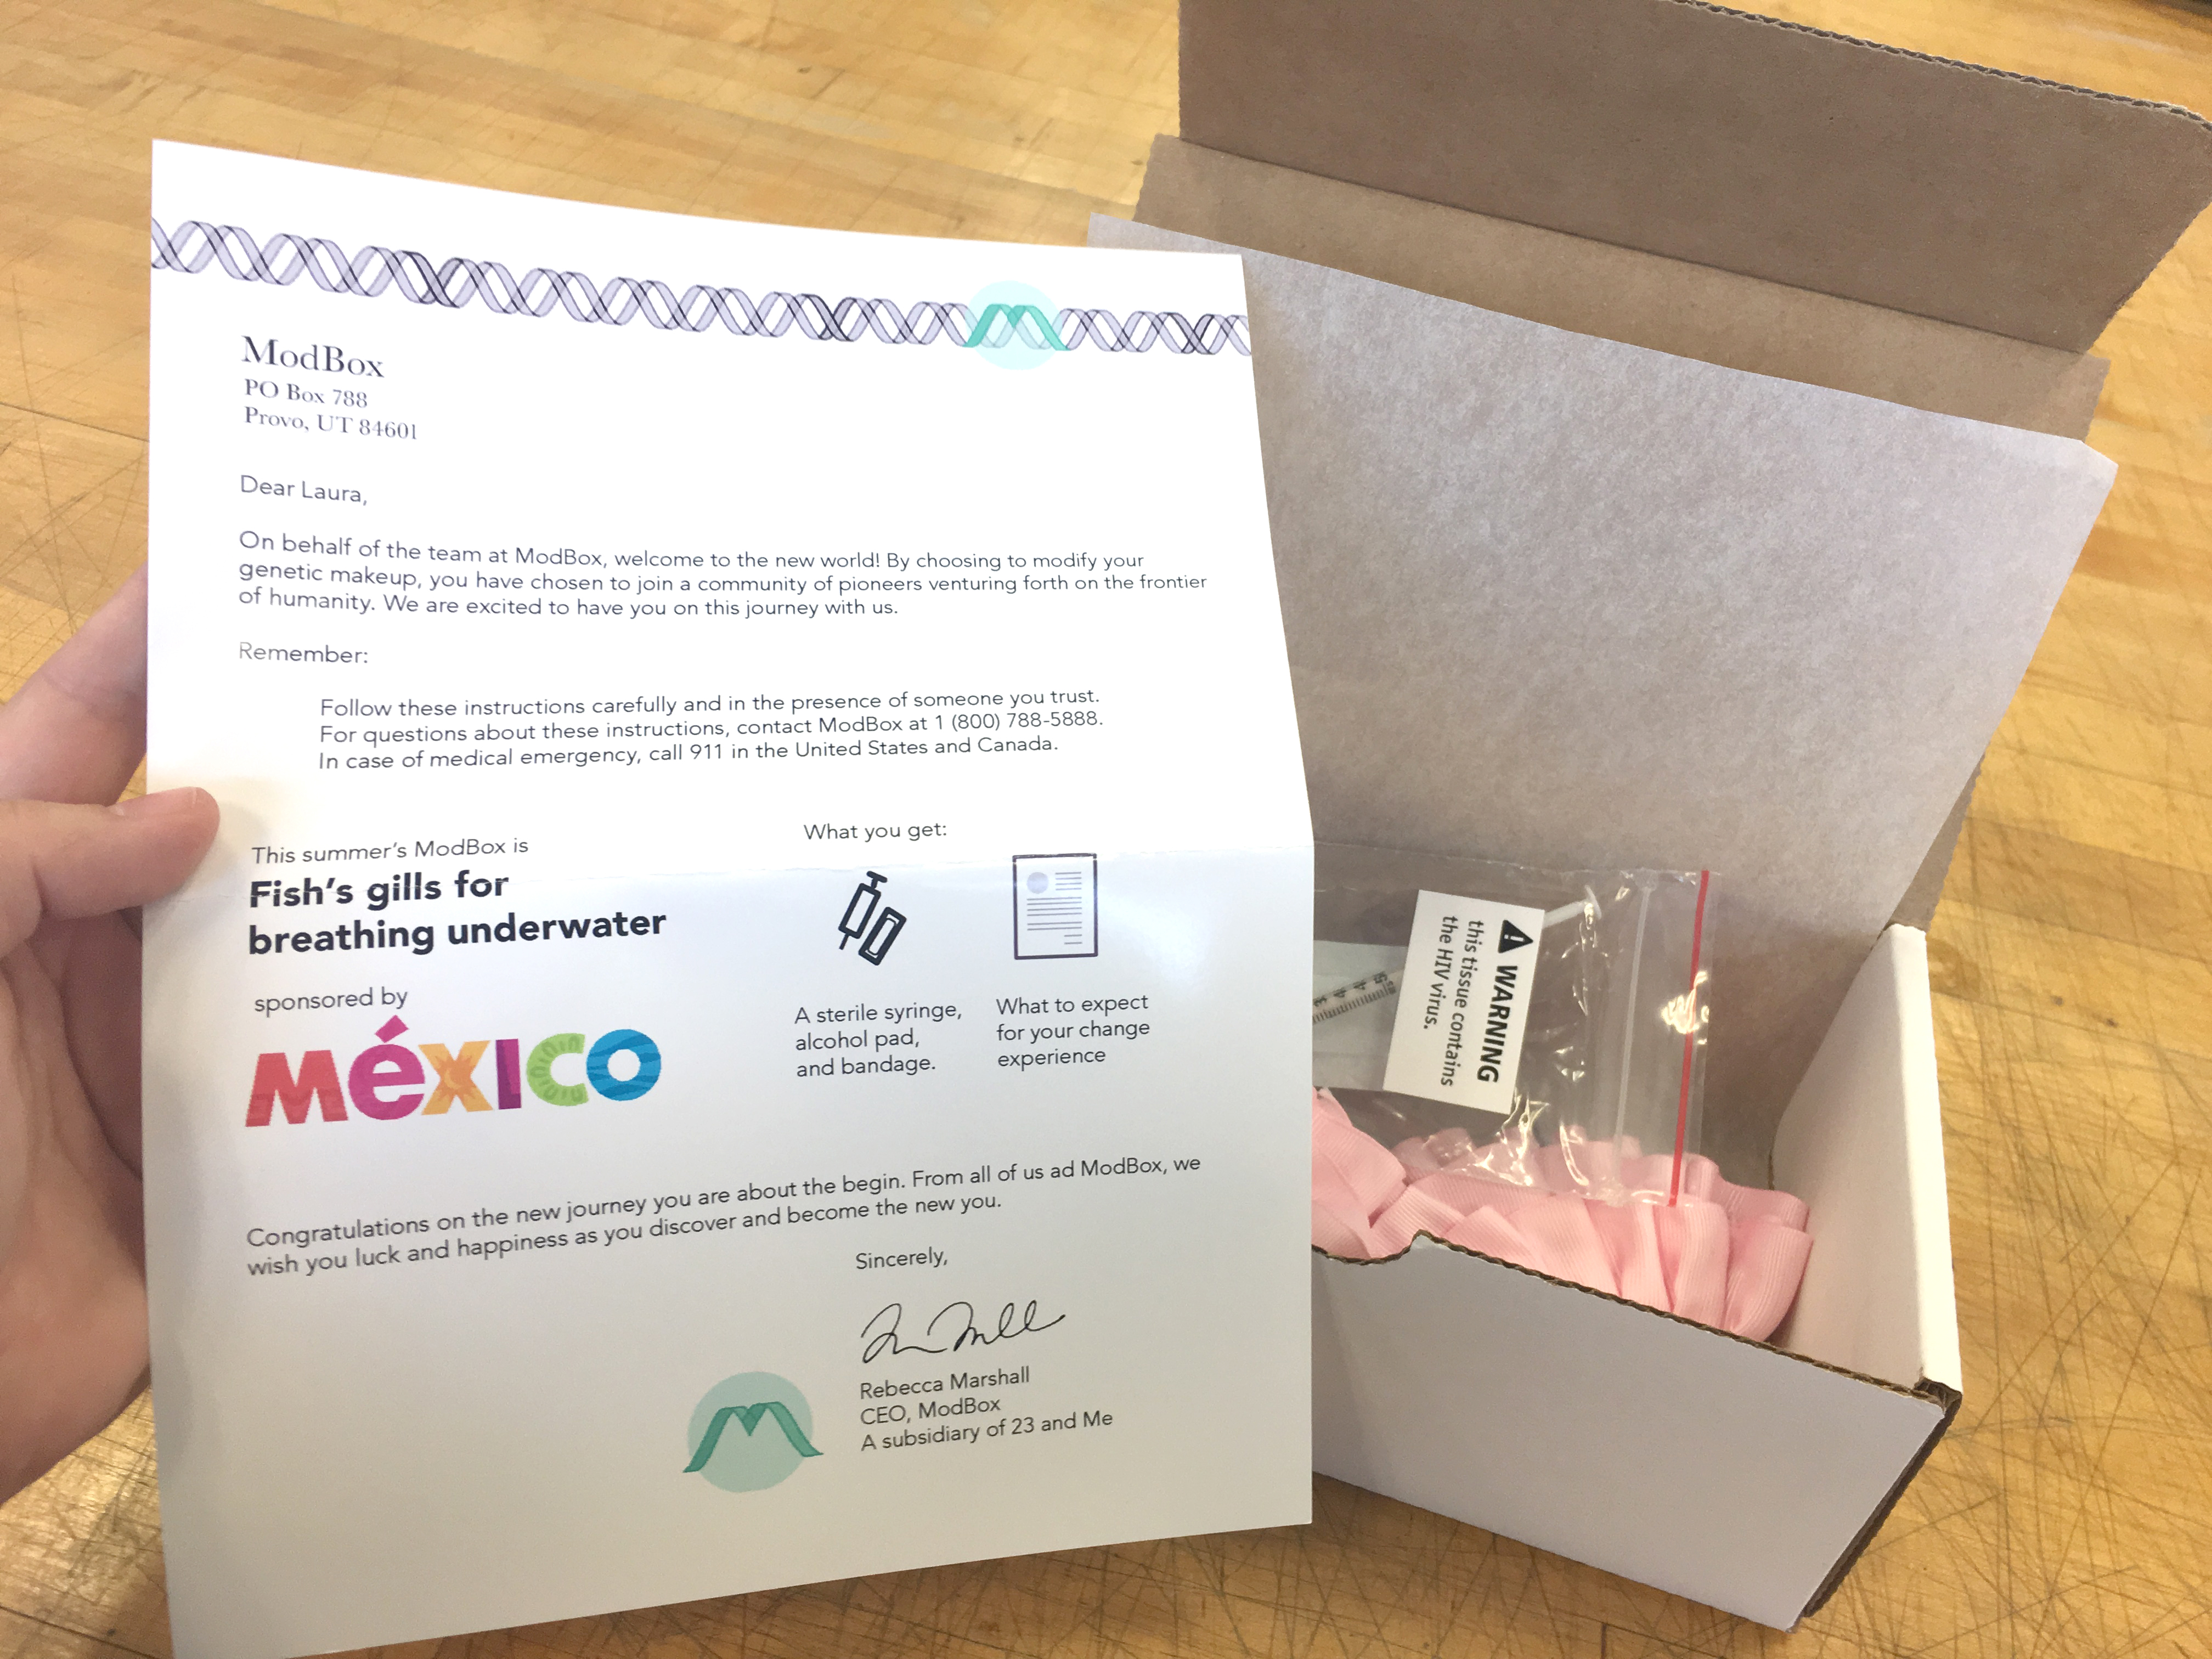 The box is open and includes a letter welcoming the customer to the frontier of humanity. The box includes a syringe and supplies to genetically modify a human with fish gills for breathing underwater. It's sponsored by Mexico tourism.